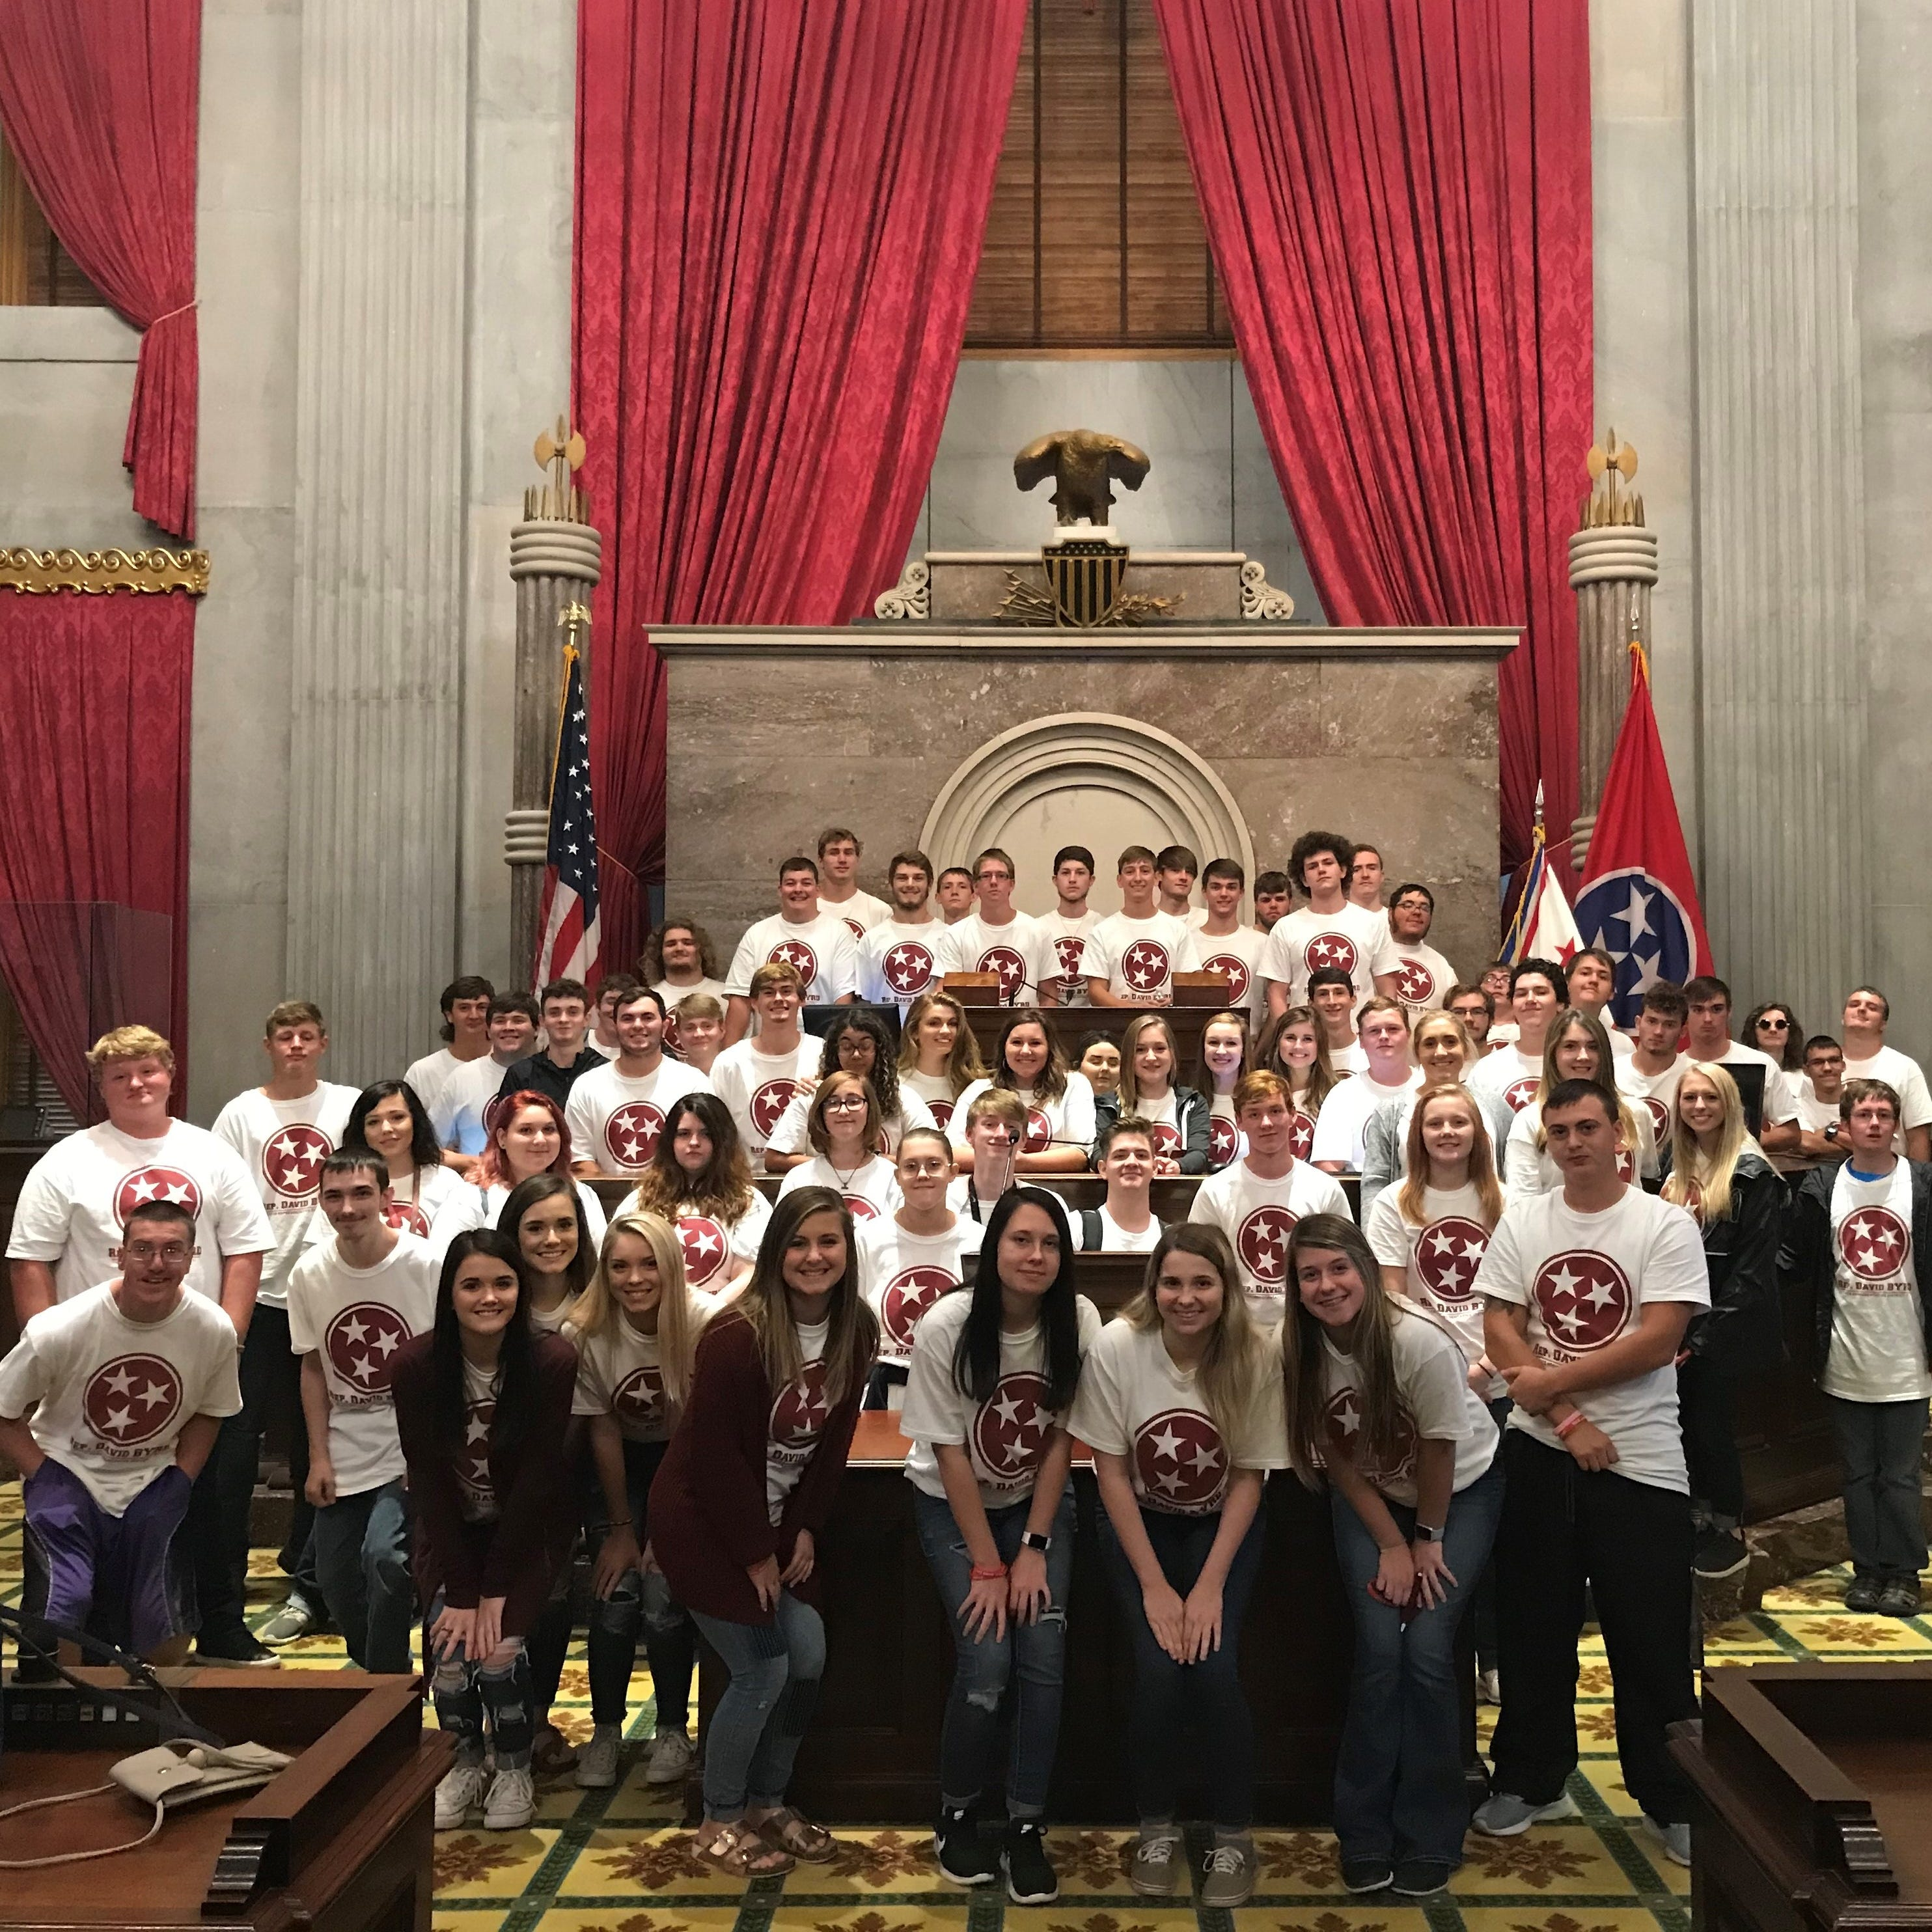 Wayne County students given Republican candidate's T-shirts to wear on Capitol field trip